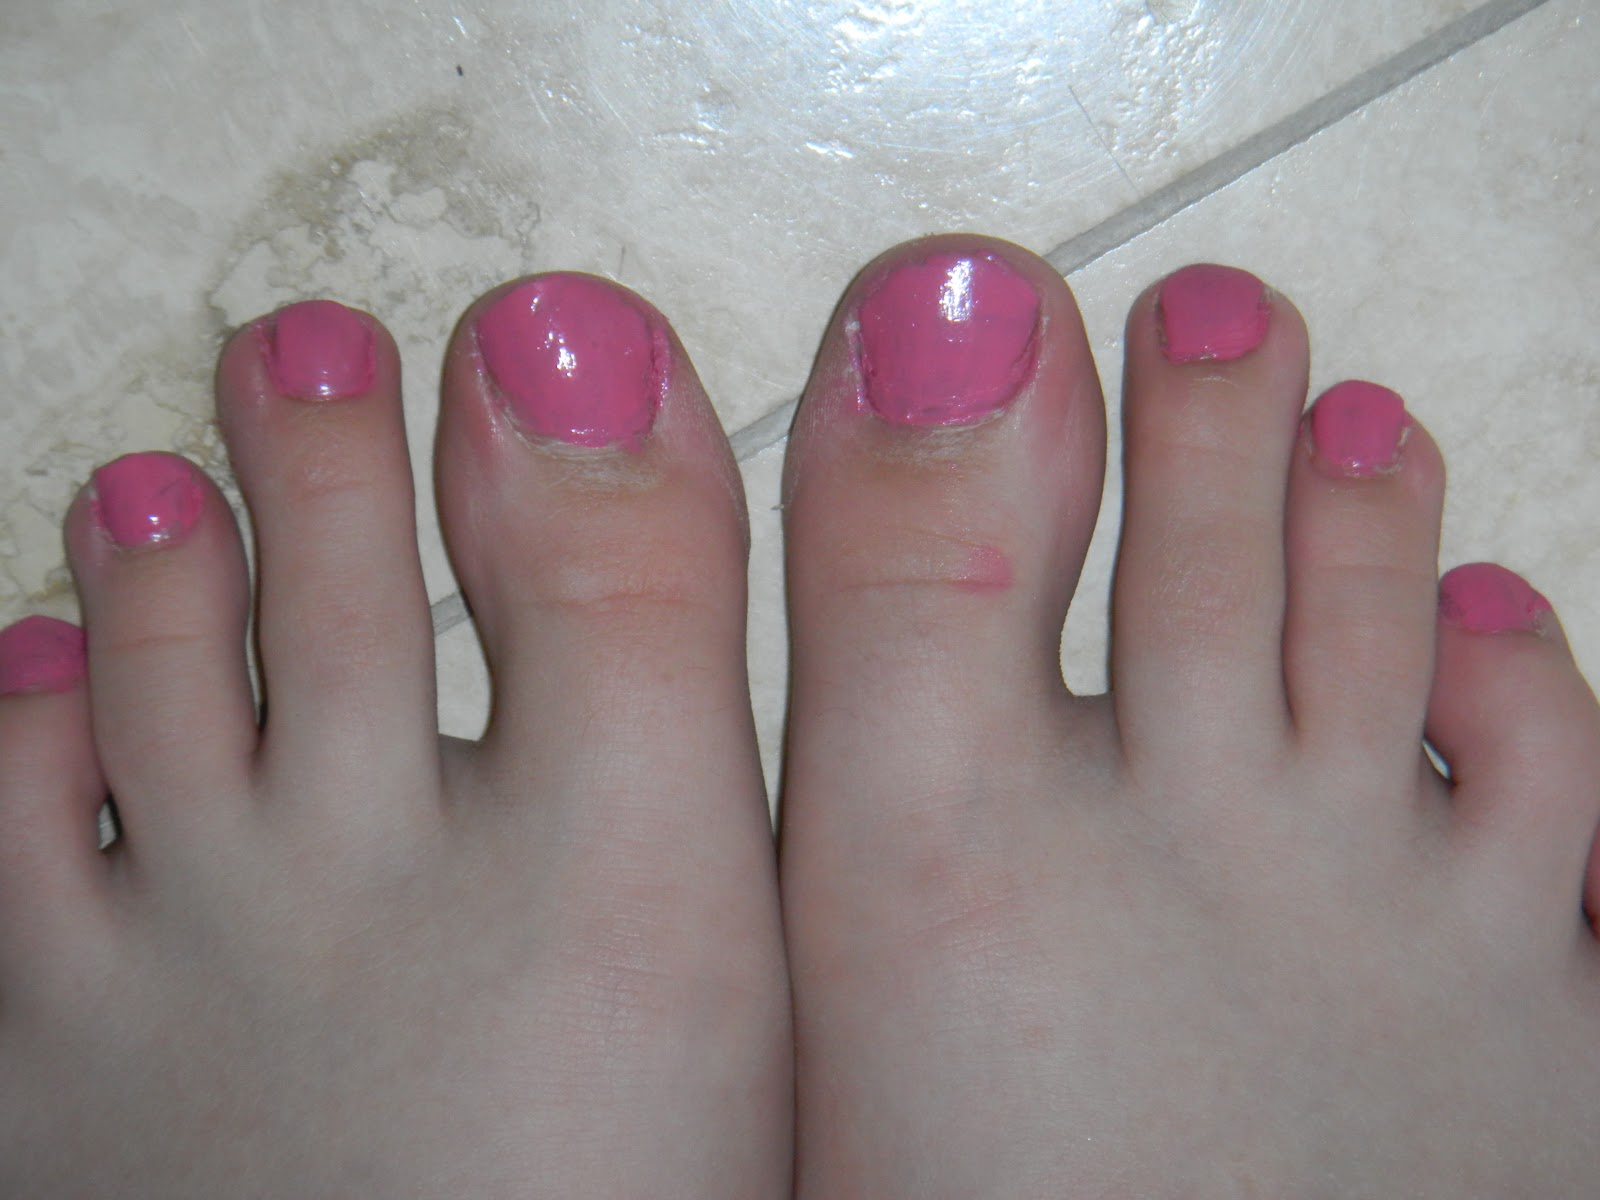 5 Things To Know About Shellac Nails